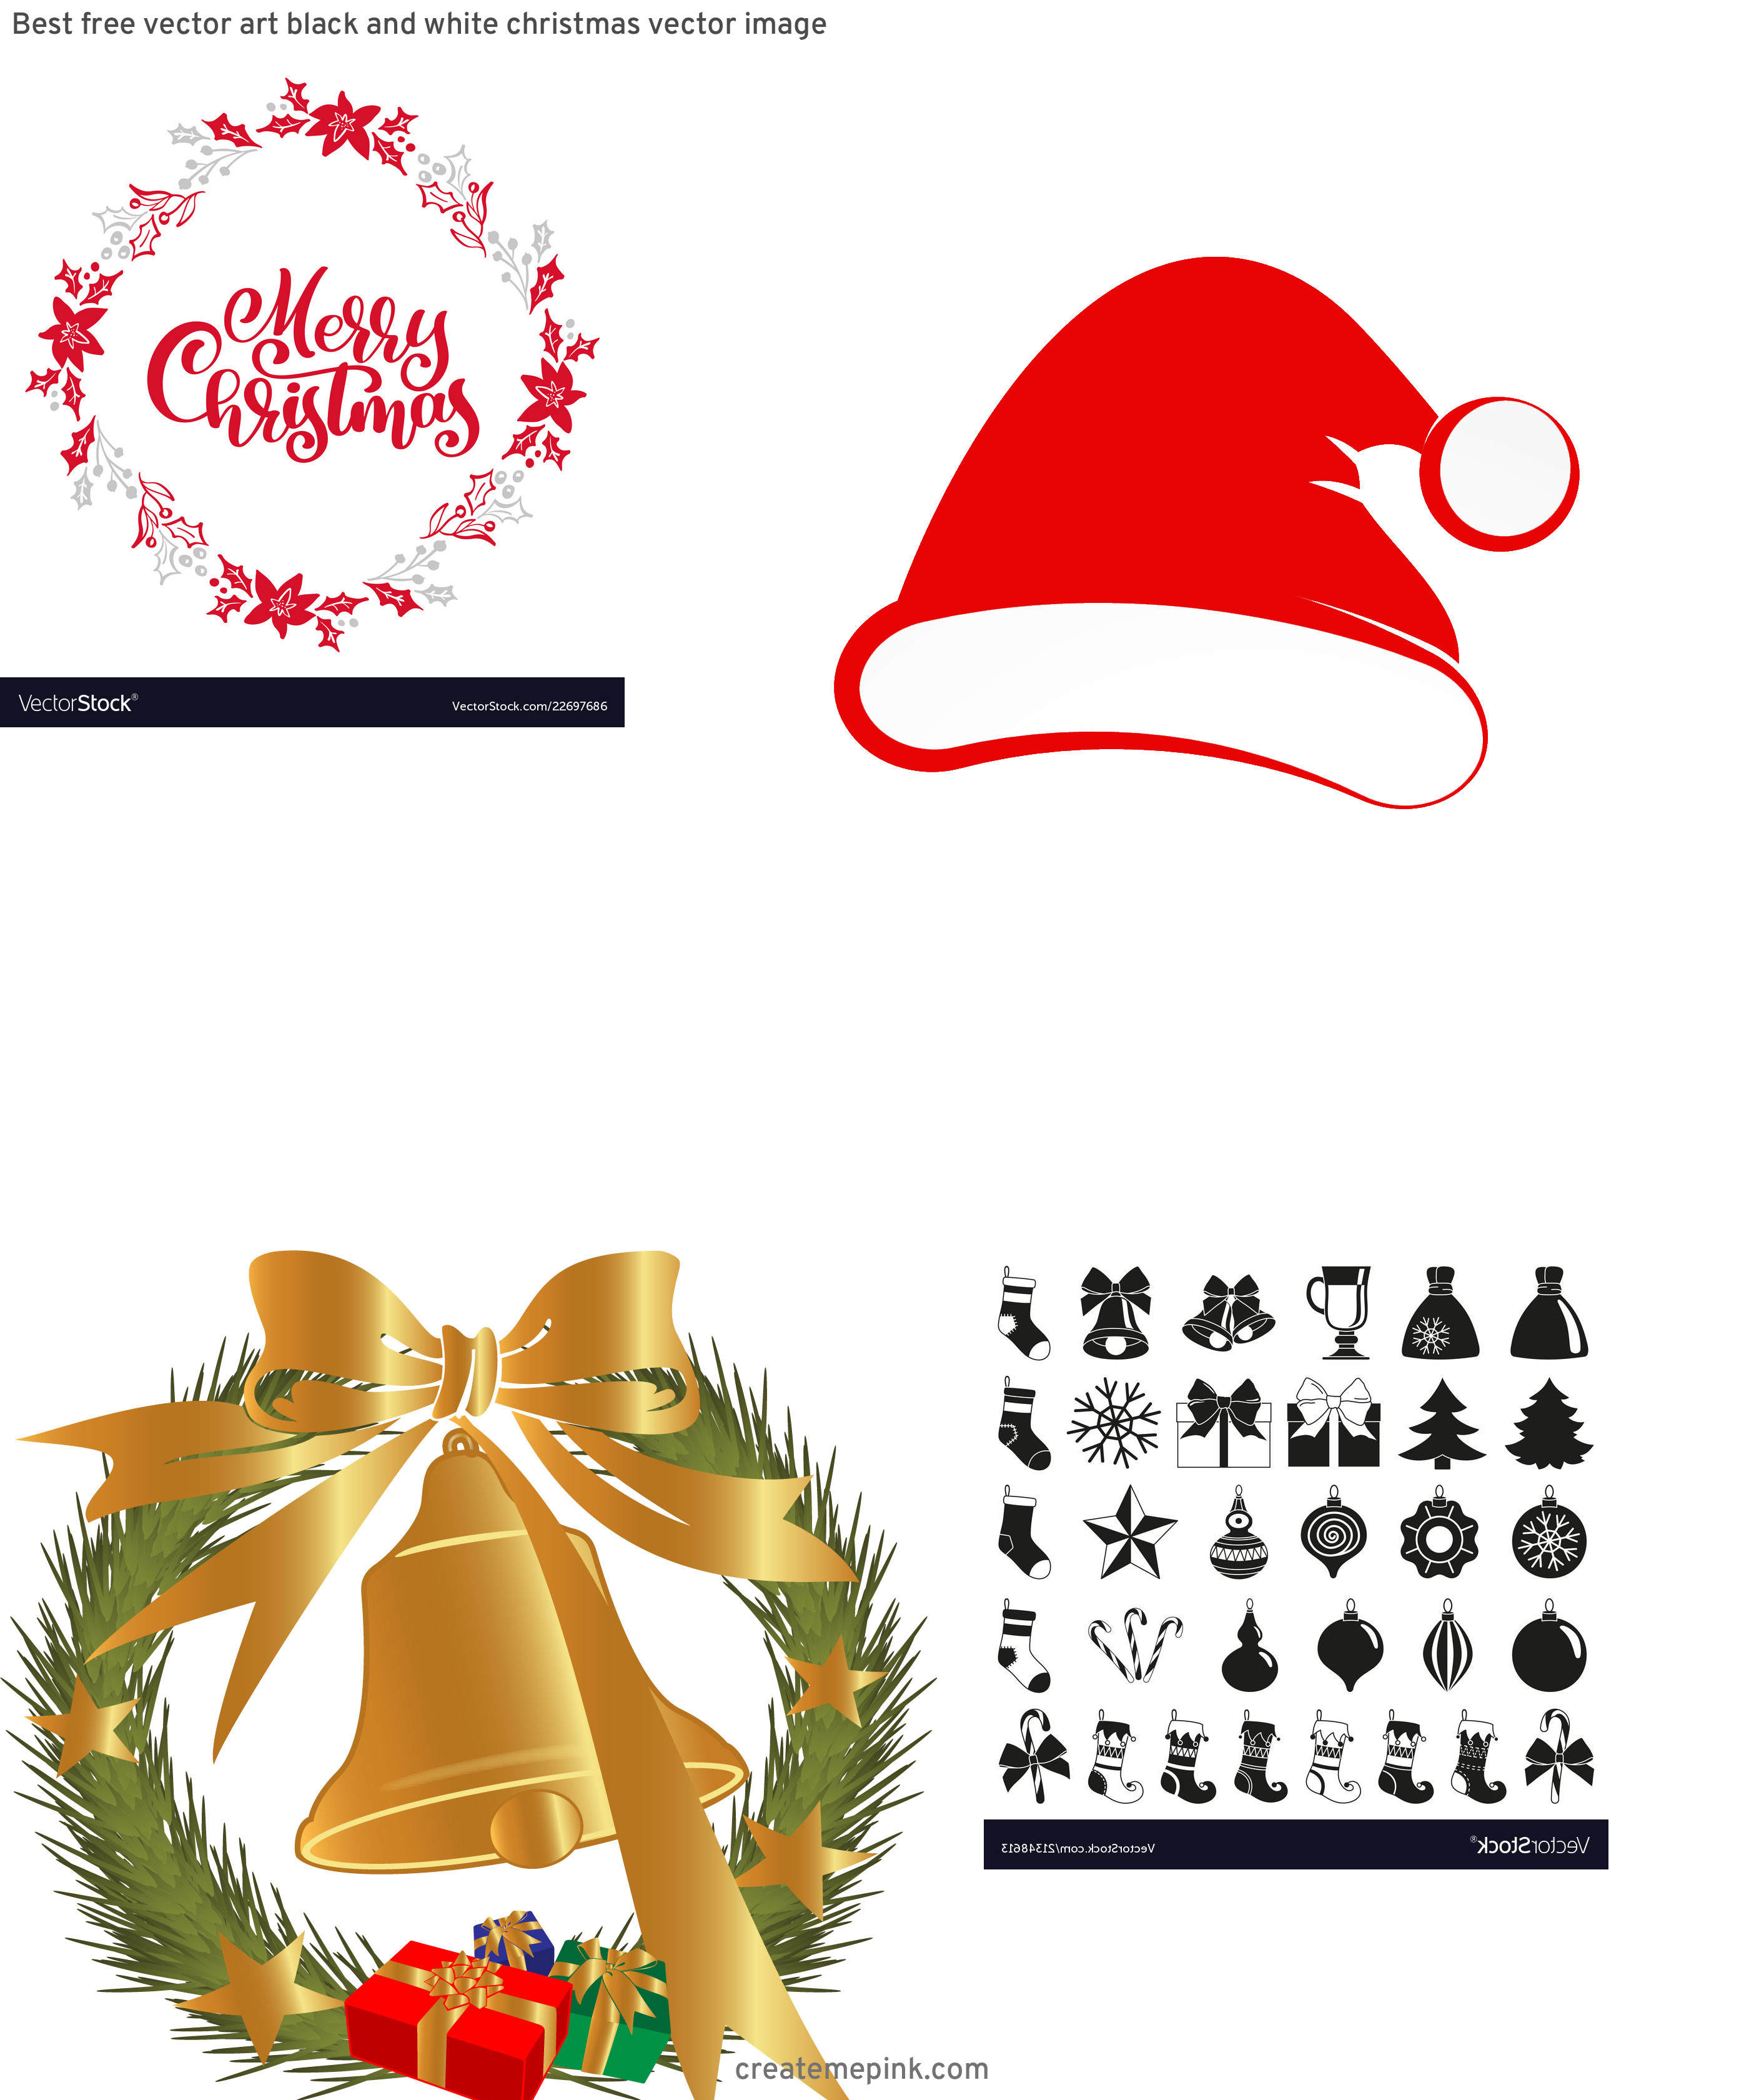 Christmas Vector Graphics Art: Best Free Vector Art Black And White Christmas Vector Image